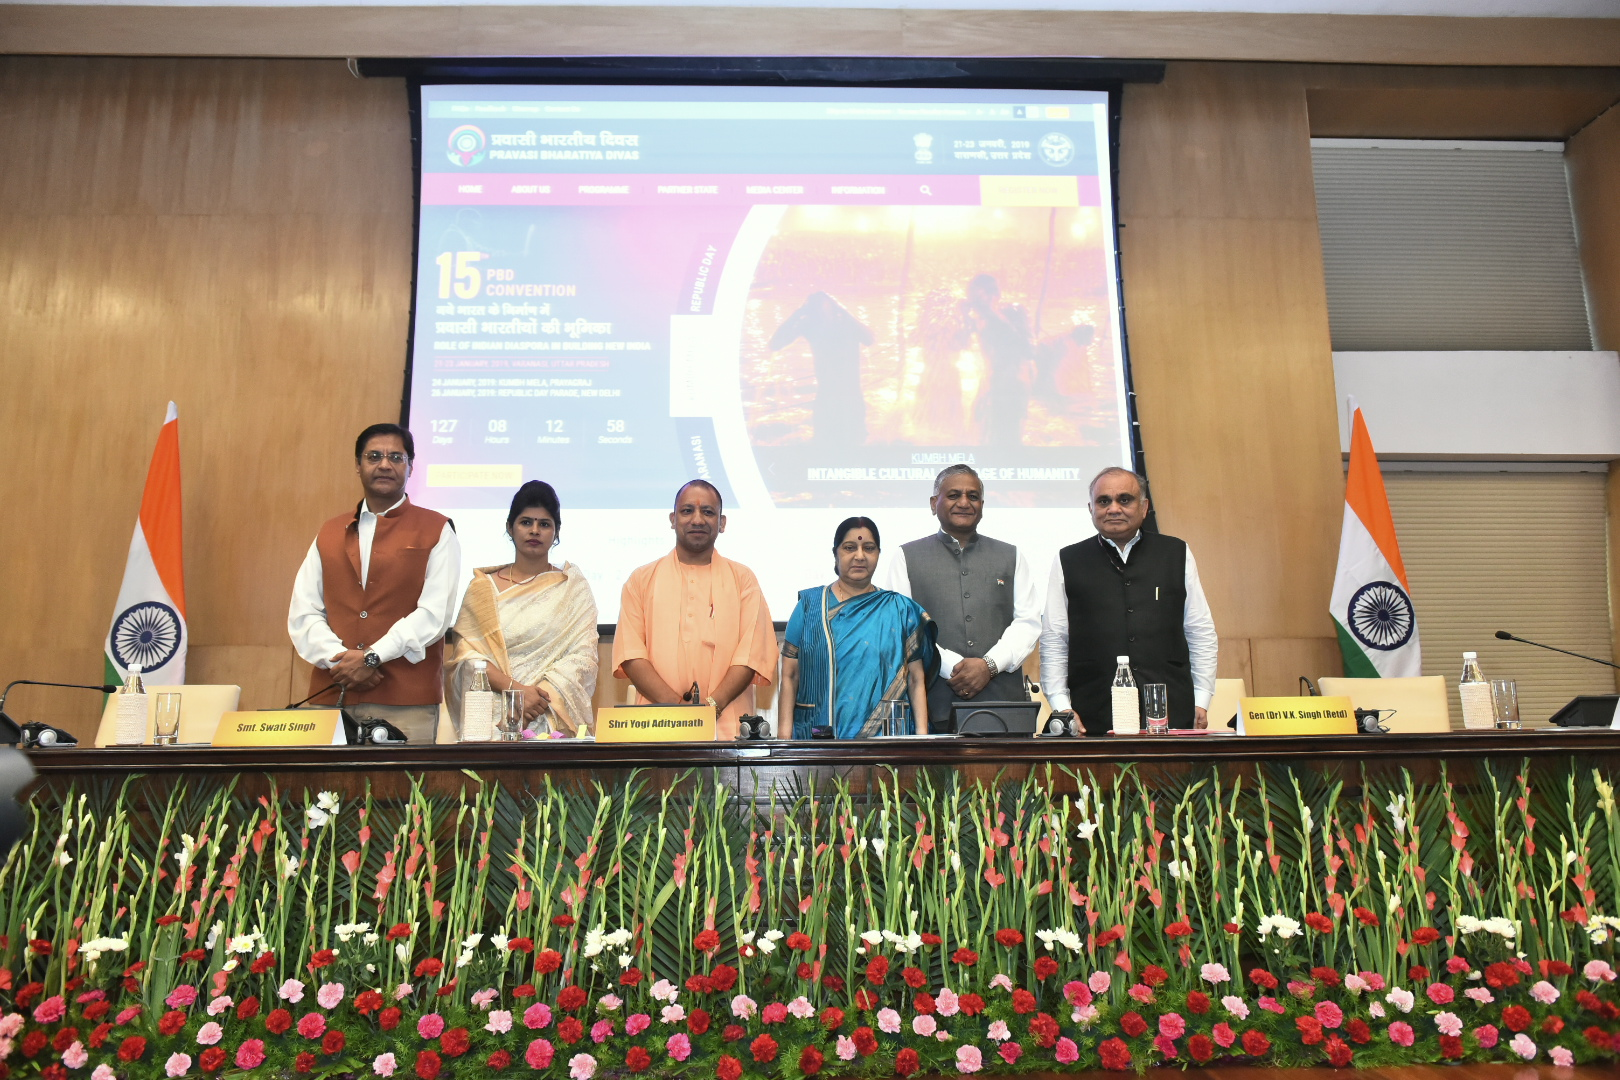 Inauguration of PBD 2019 website